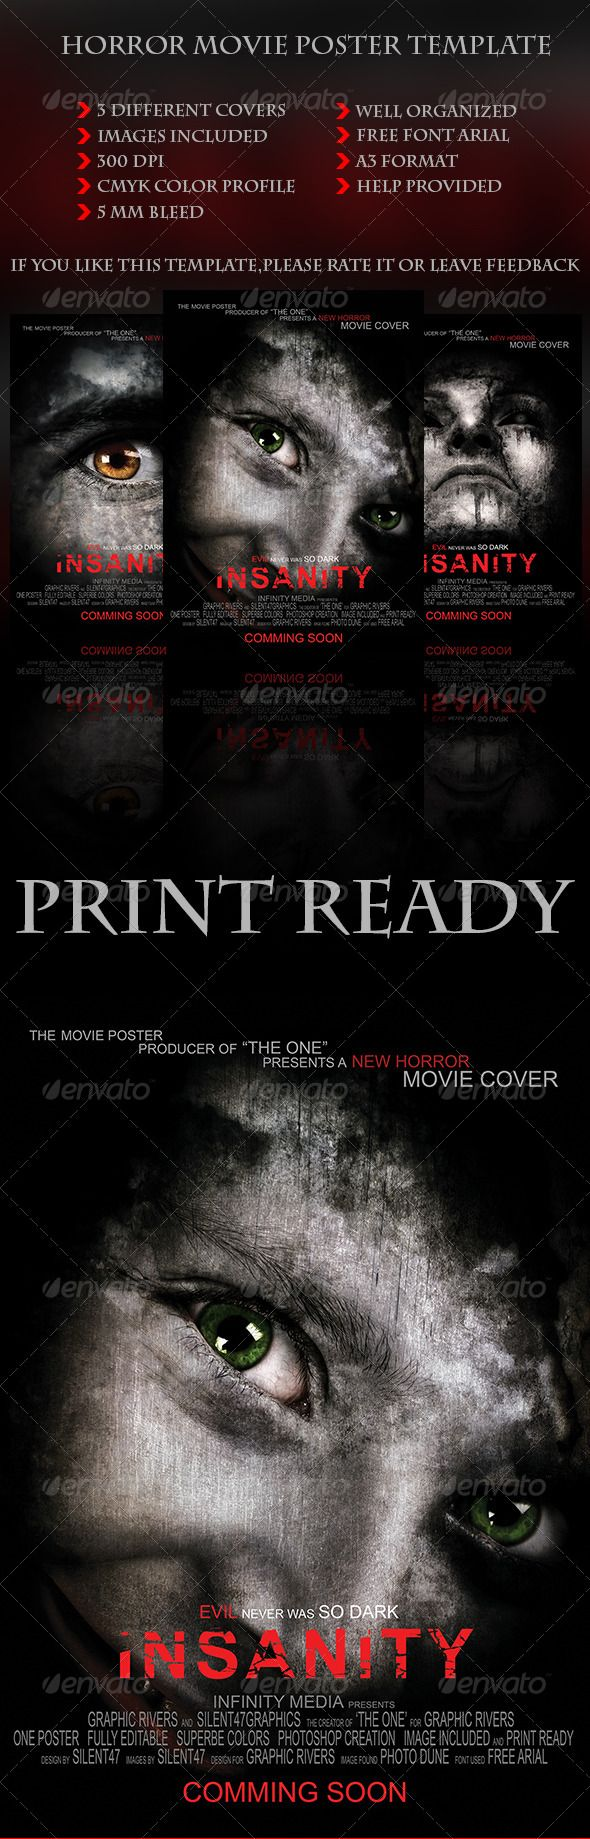 horror movie poster template photoshop psd death cover available here httpsgraphicrivernetitemhorror movie poster template 5975361refpxcr